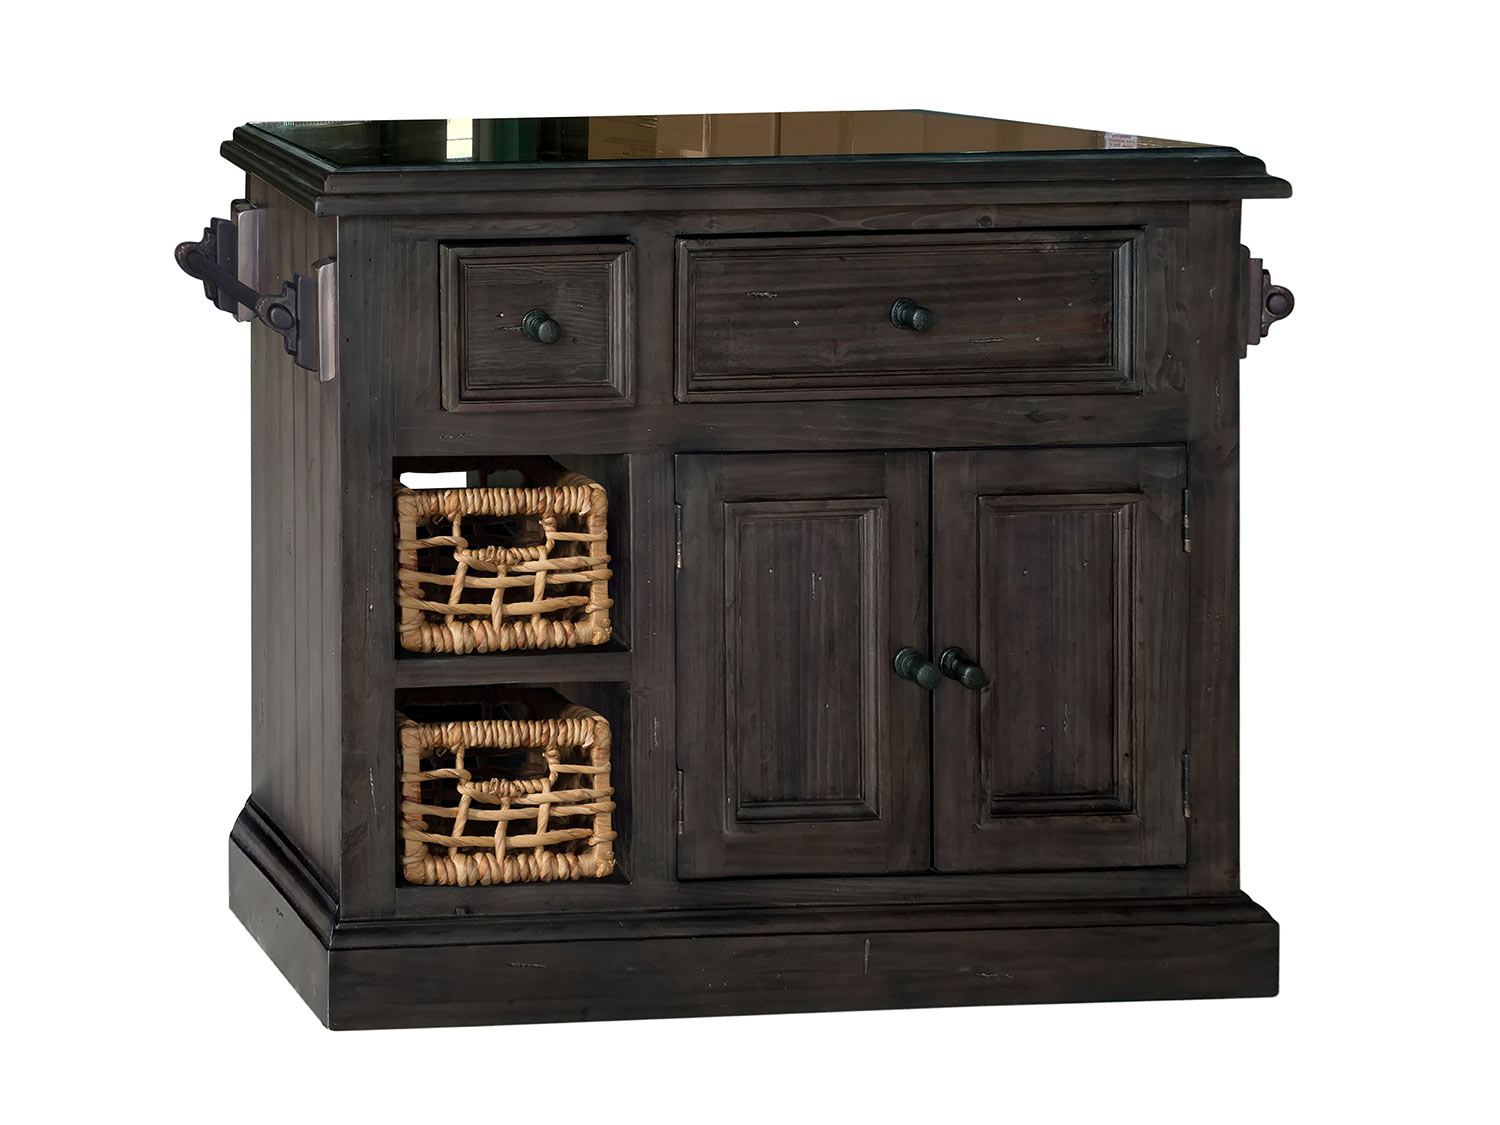 Hillsdale Tuscan Retreat Small Granite Top Kitchen Island with 2 Baskets - Weathered Gray